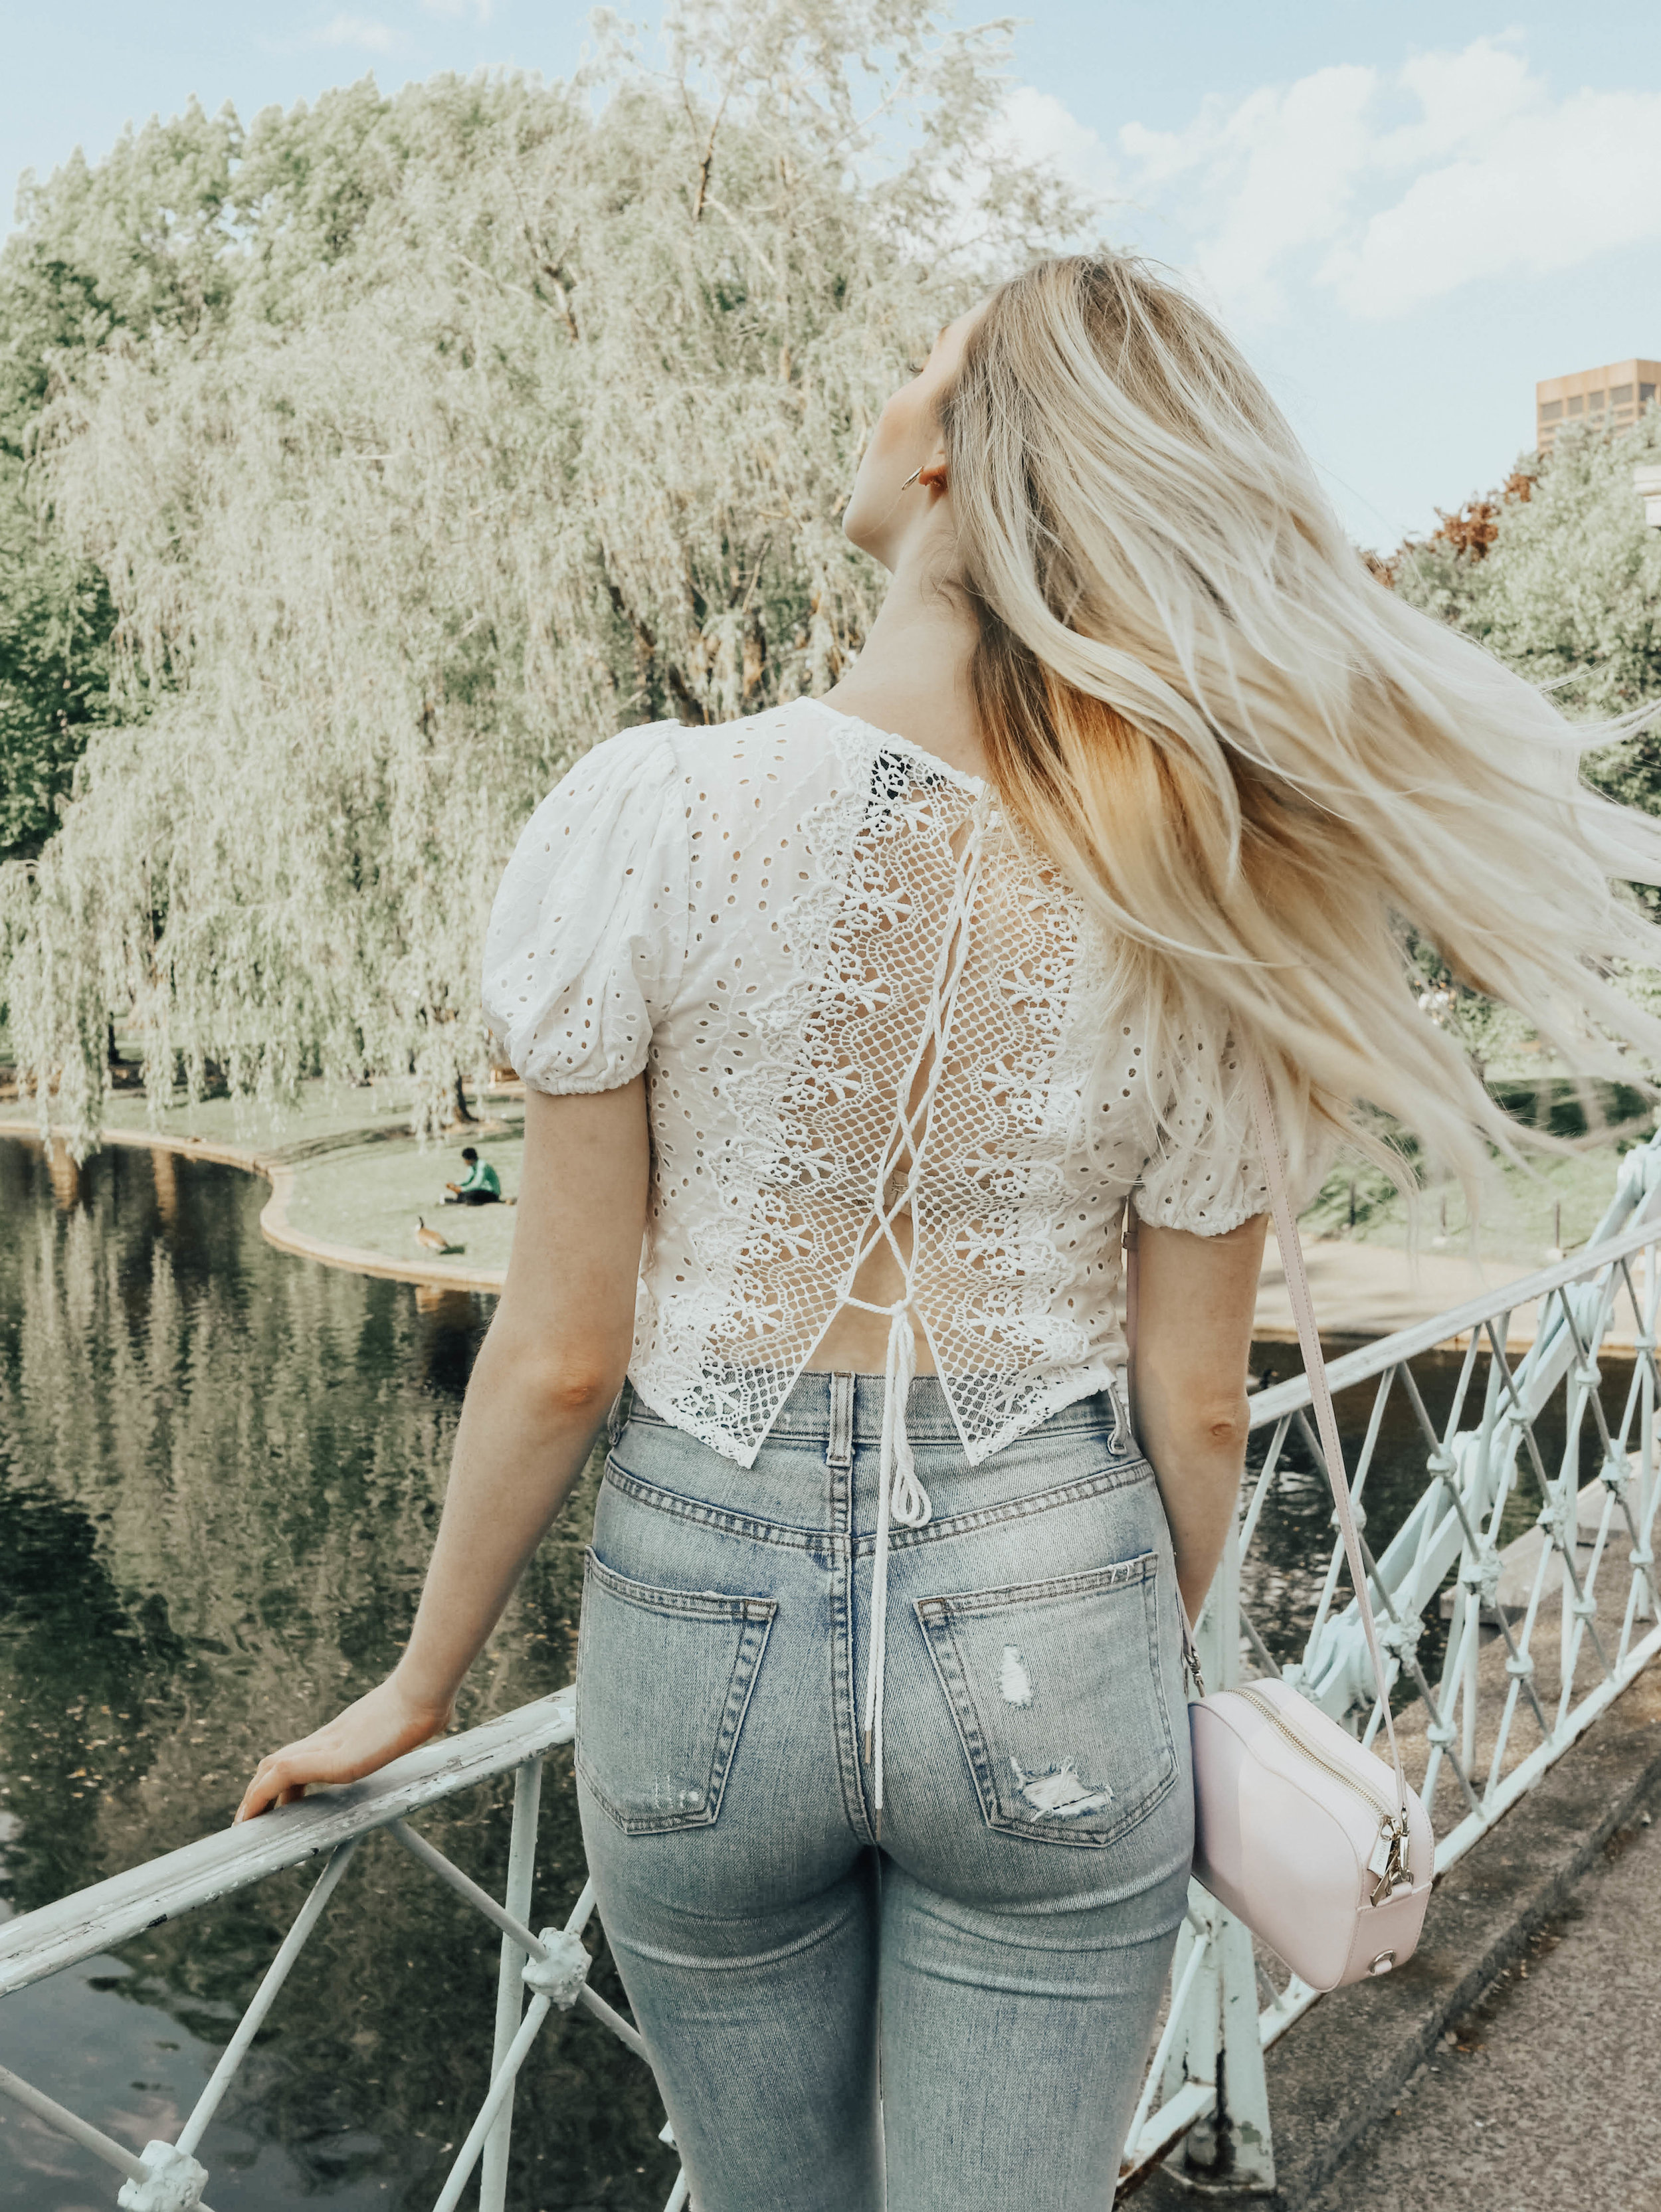 Lace Back Top | @maevestier